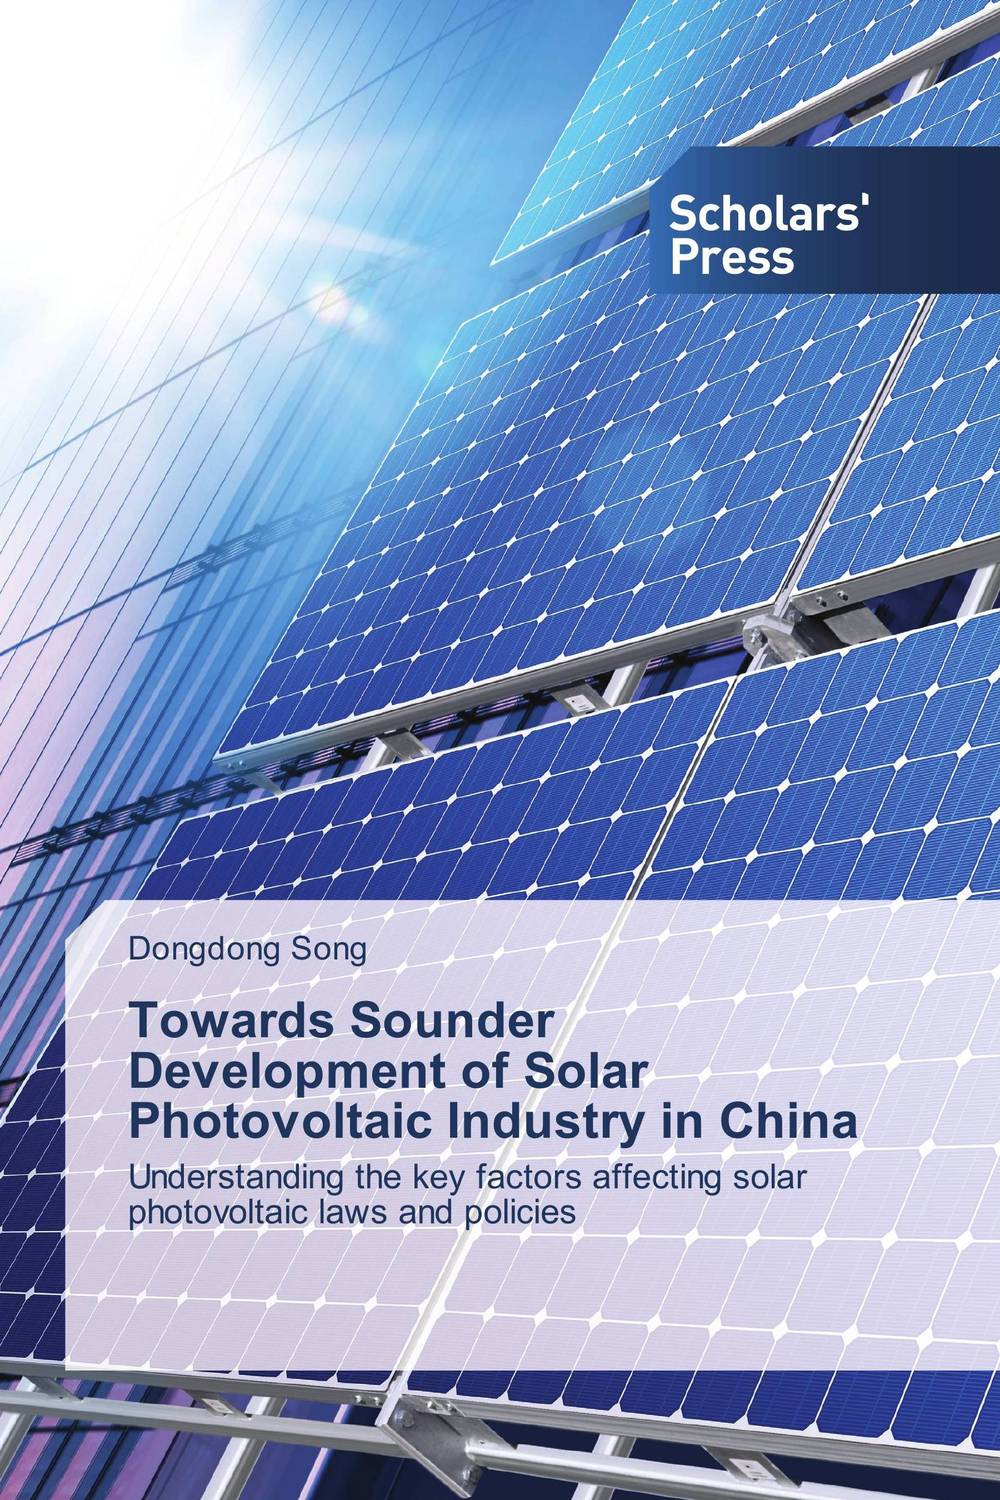 Towards Sounder Development of Solar Photovoltaic Industry in China anton camarota sustainability management in the solar photovoltaic industry